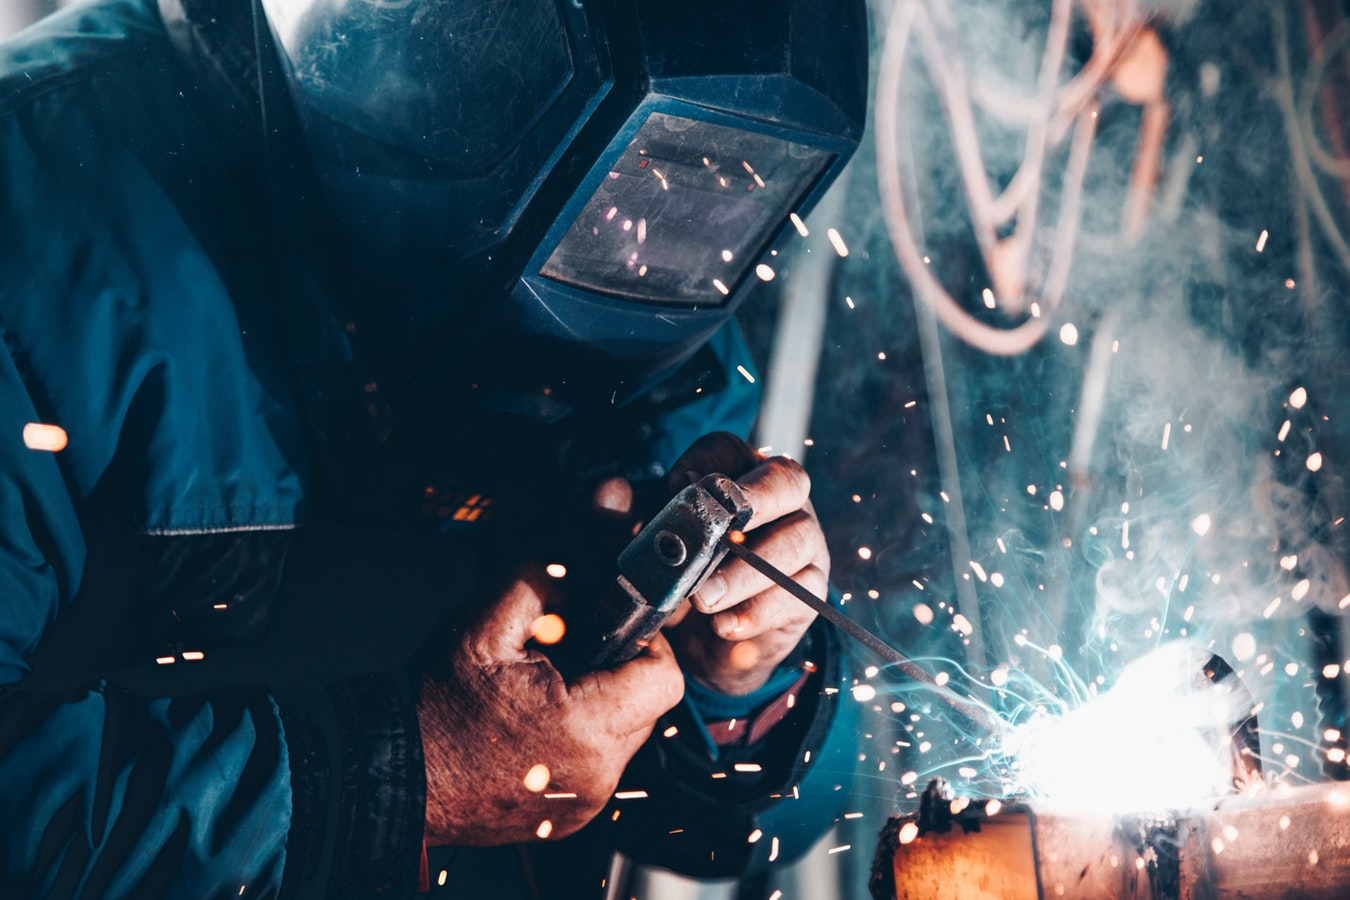 Person in full welding mask uses tools to weld metal together